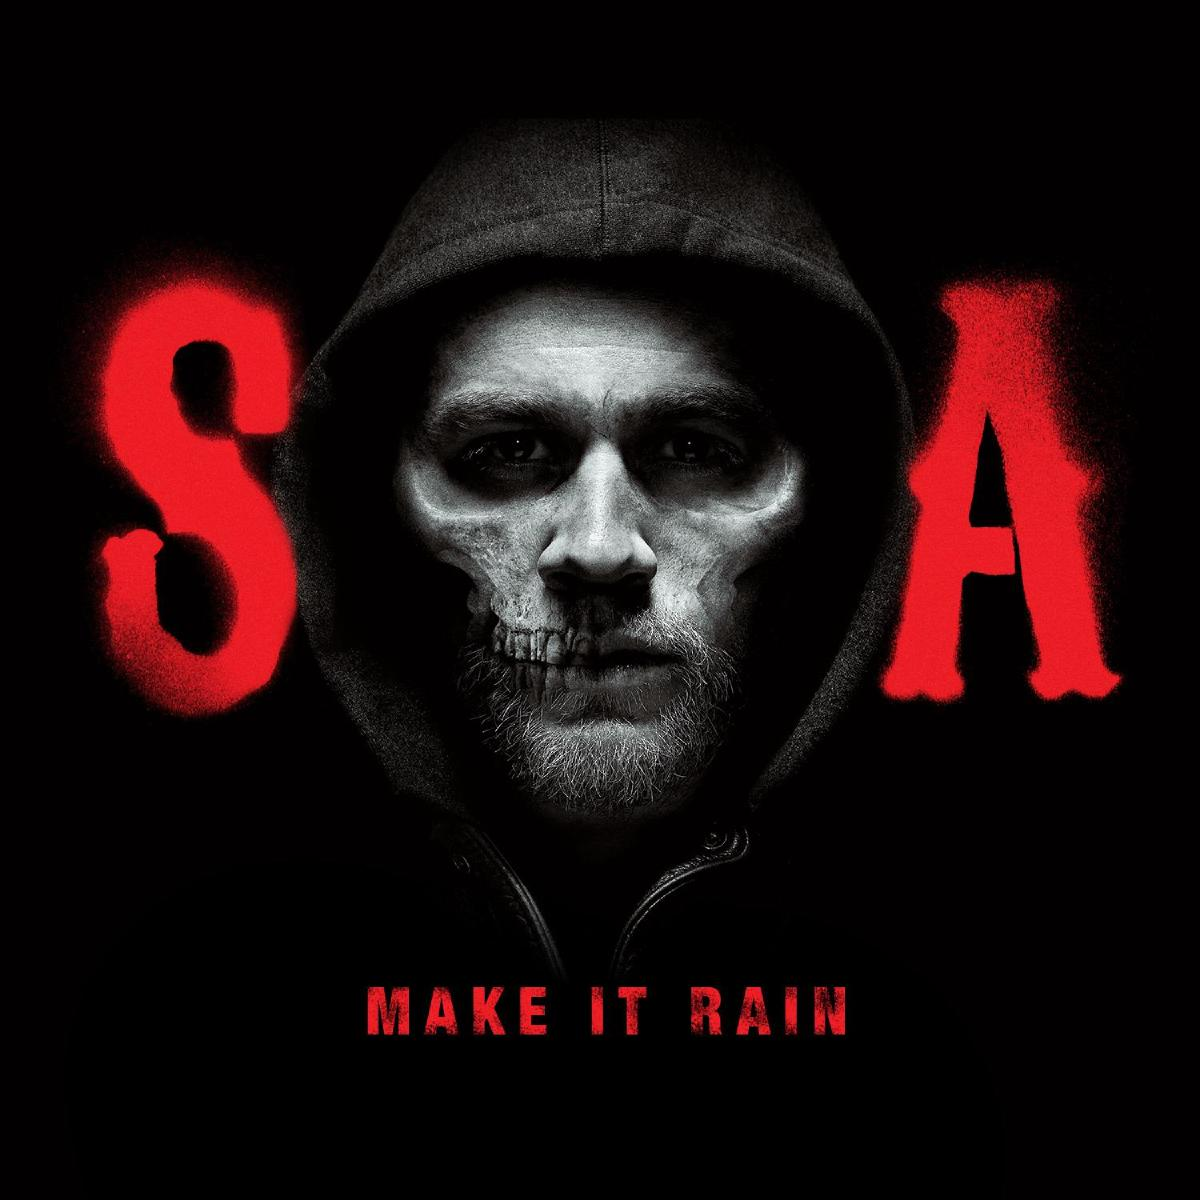 Make It Rain (From Sons of Anarchy) by Ed Sheeran